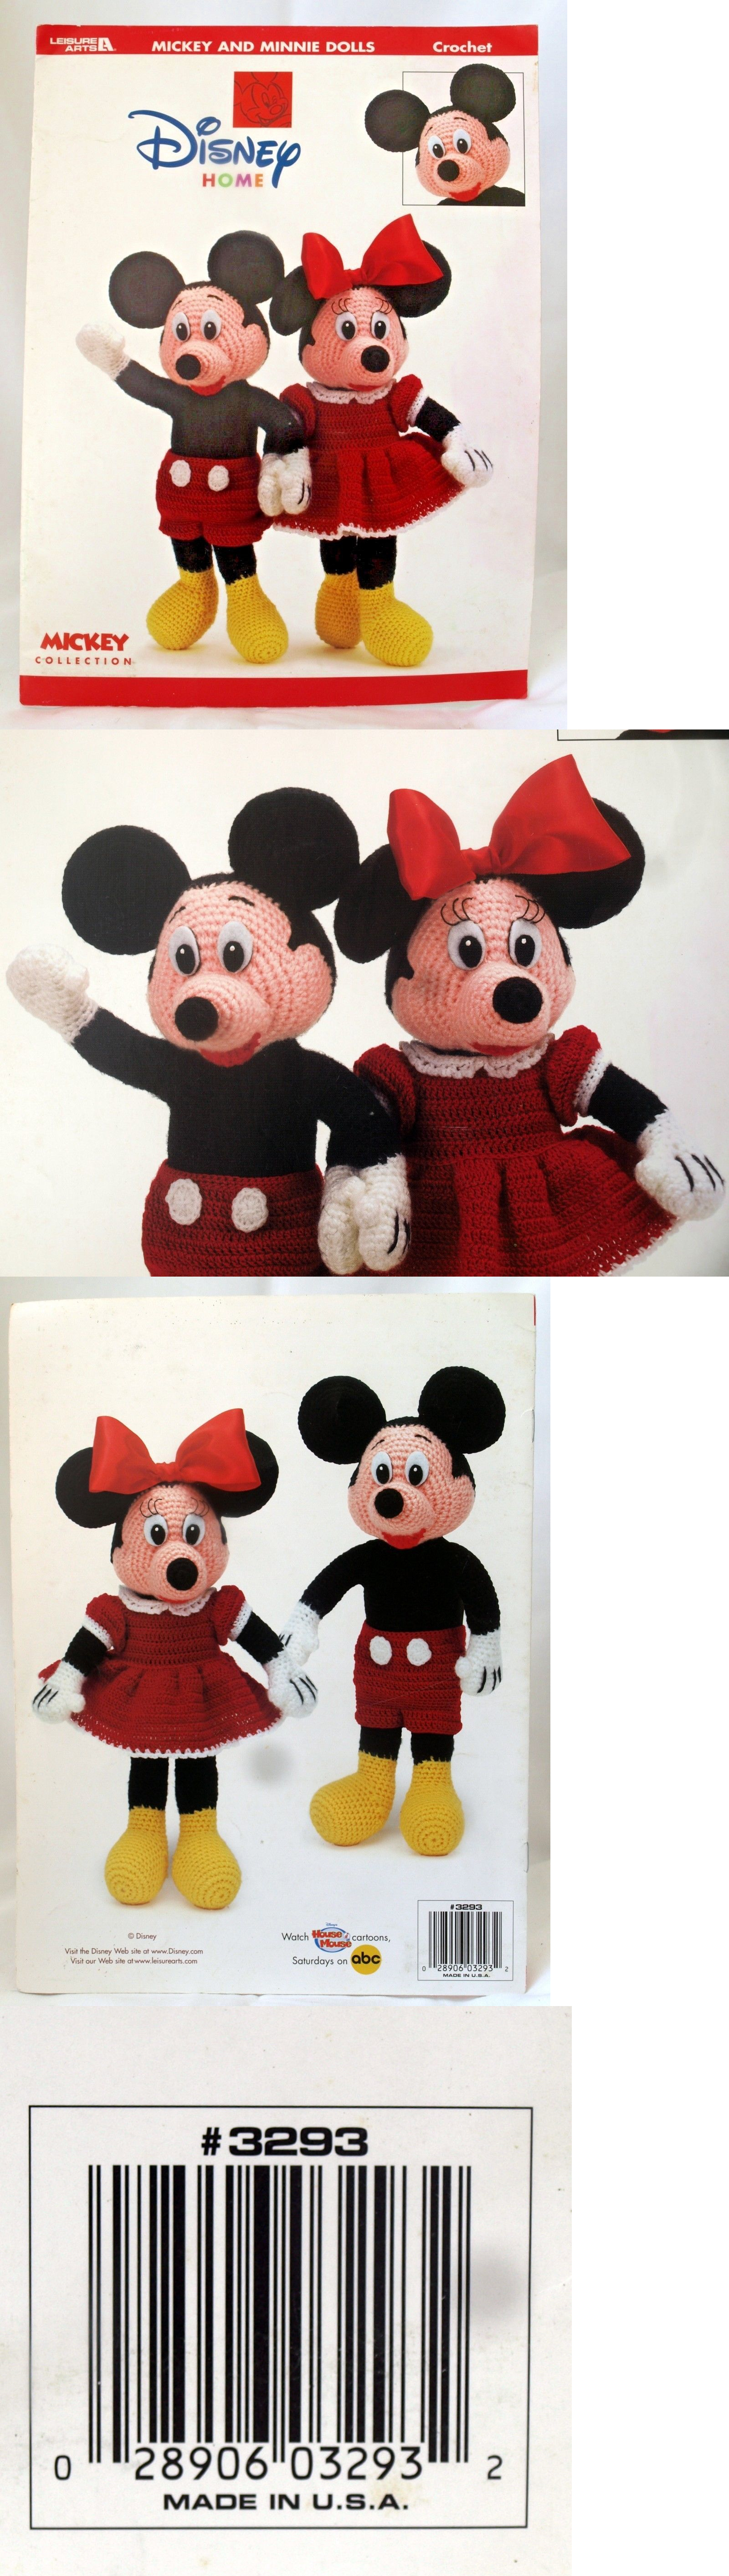 Patterns contemporary 41228 mickey and minnie mouse dolls walt patterns contemporary 41228 mickey and minnie mouse dolls walt disney world home crochet patterns bankloansurffo Choice Image